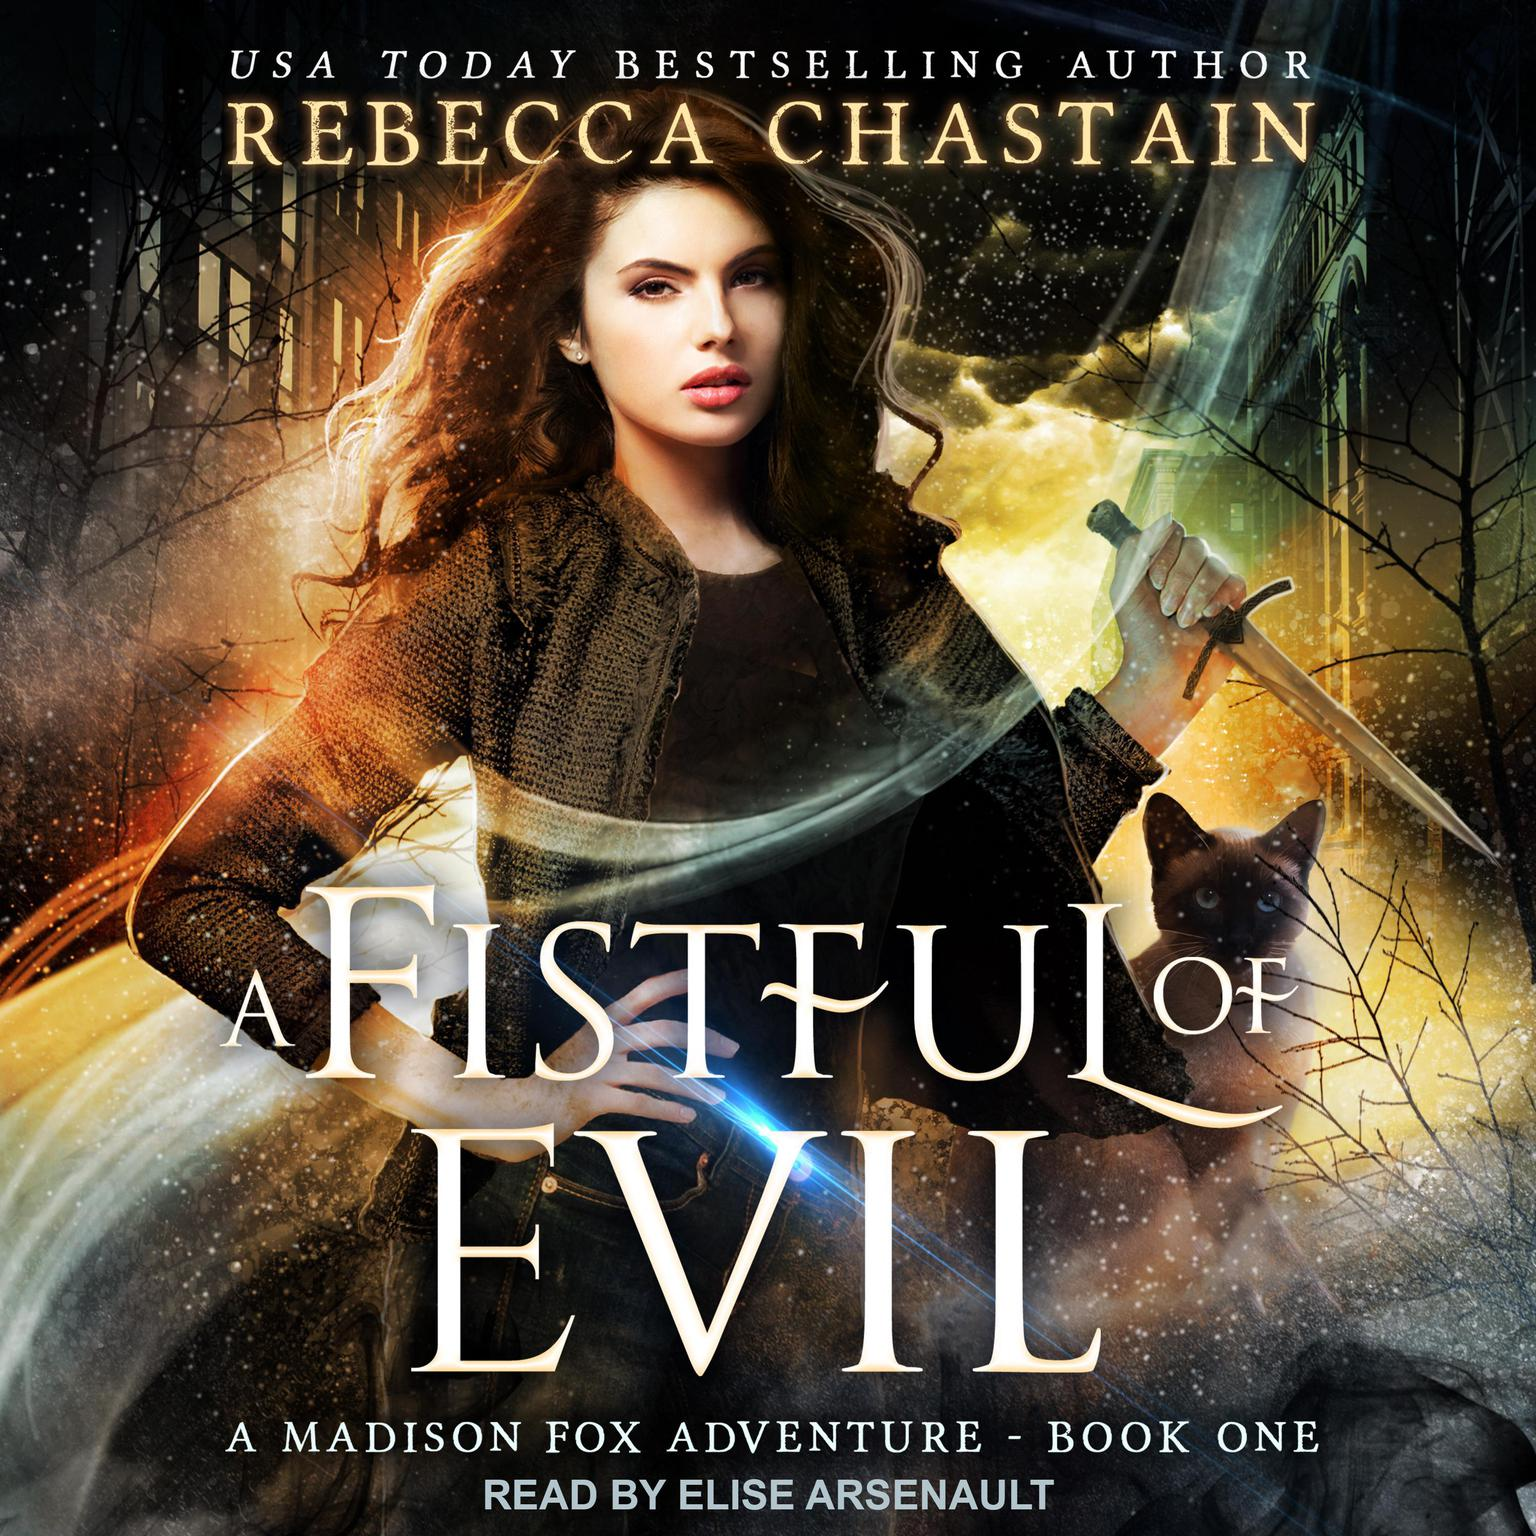 Printable A Fistful of Evil Audiobook Cover Art